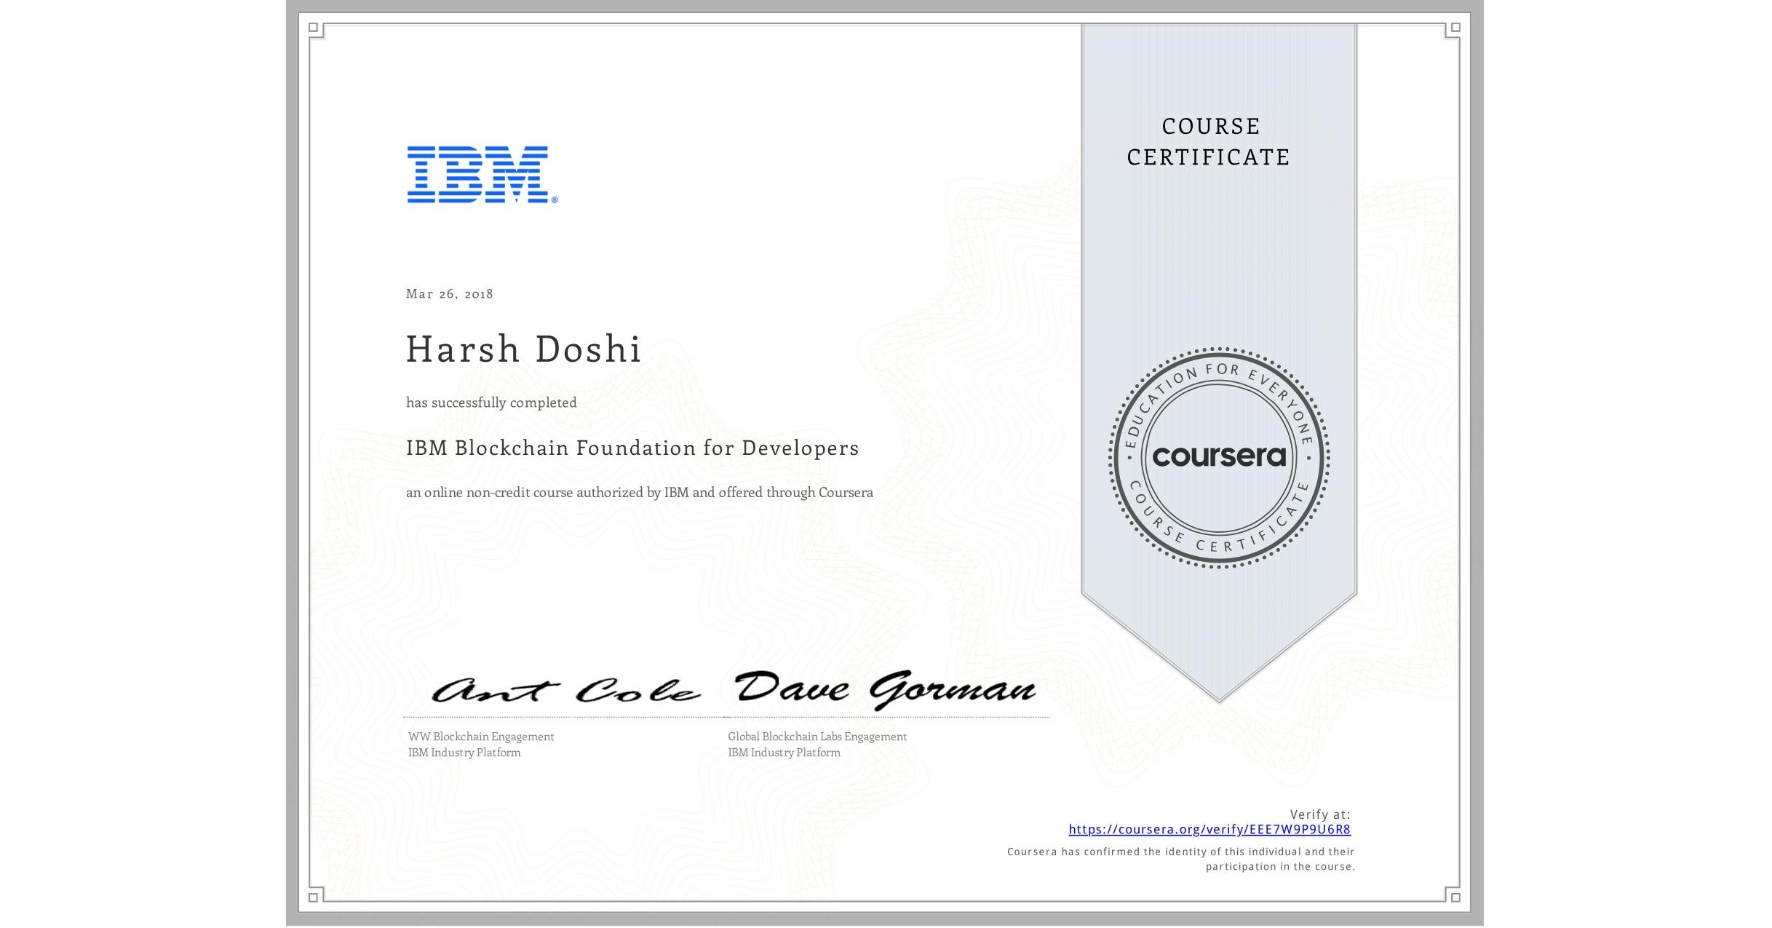 View certificate for Harsh Doshi, IBM Blockchain Foundation for Developers, an online non-credit course authorized by IBM and offered through Coursera